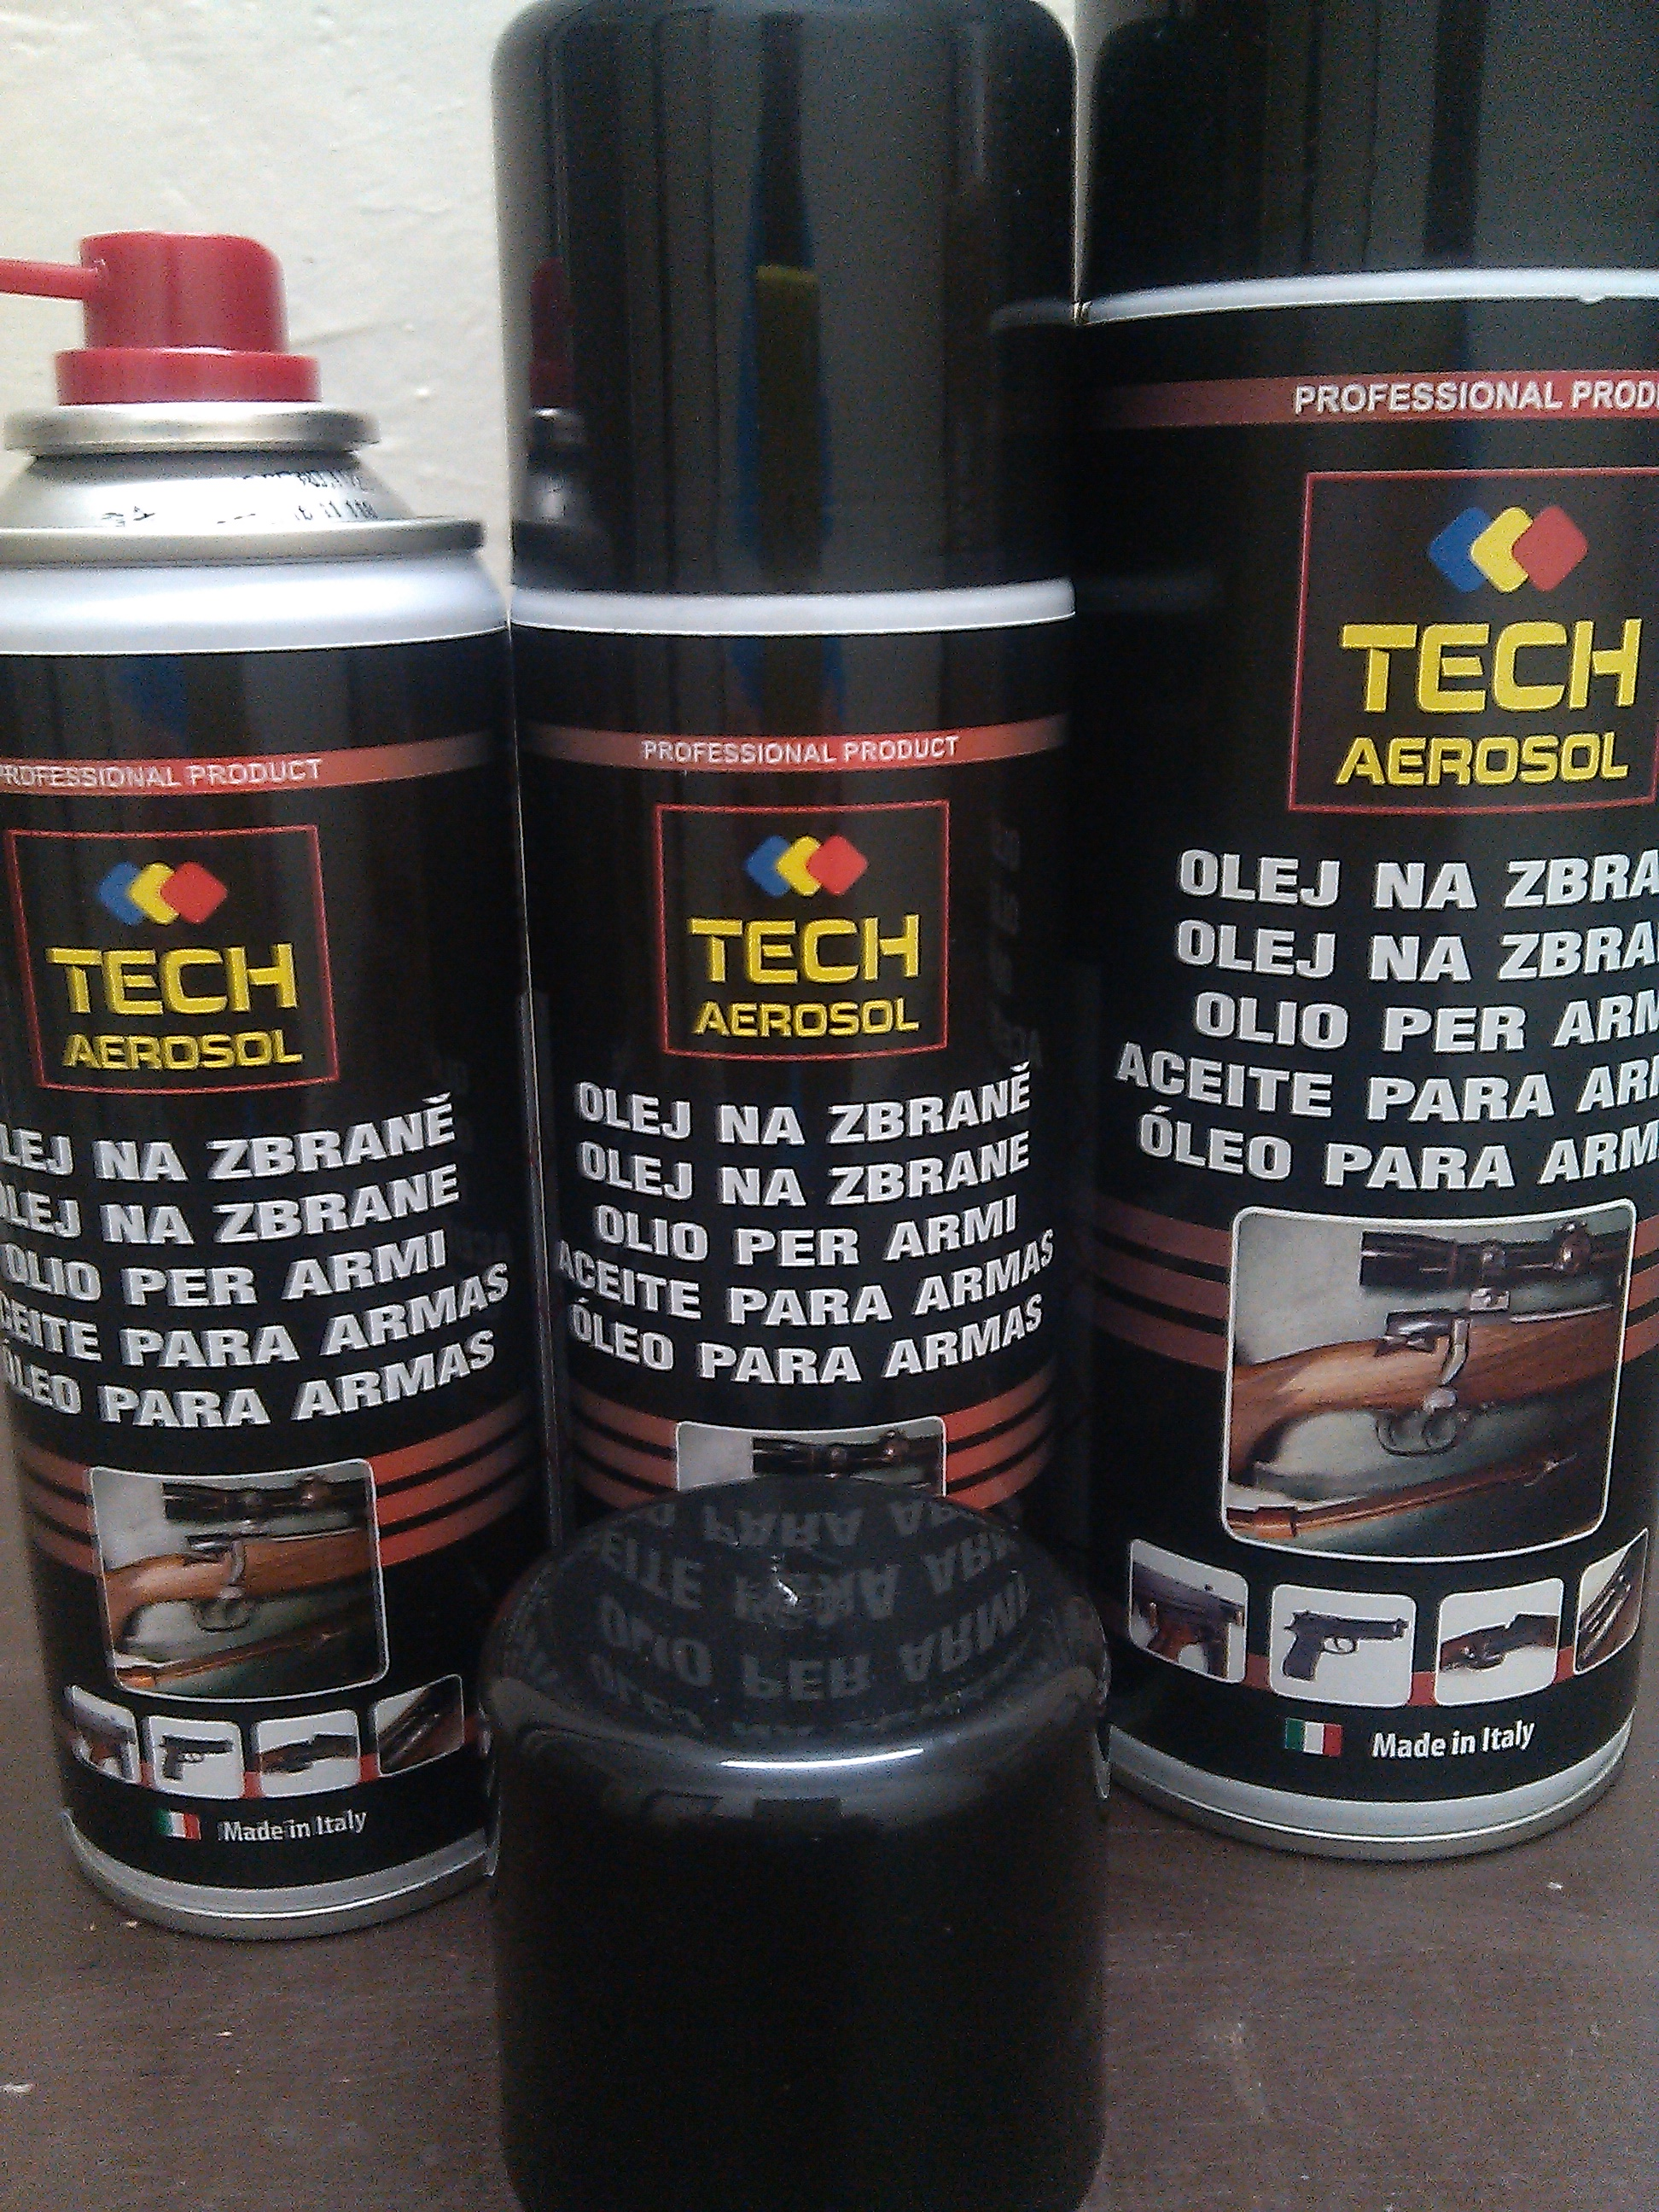 slide /fotky15951/slider/Tech-aerosol-200-a-400ml.jpg